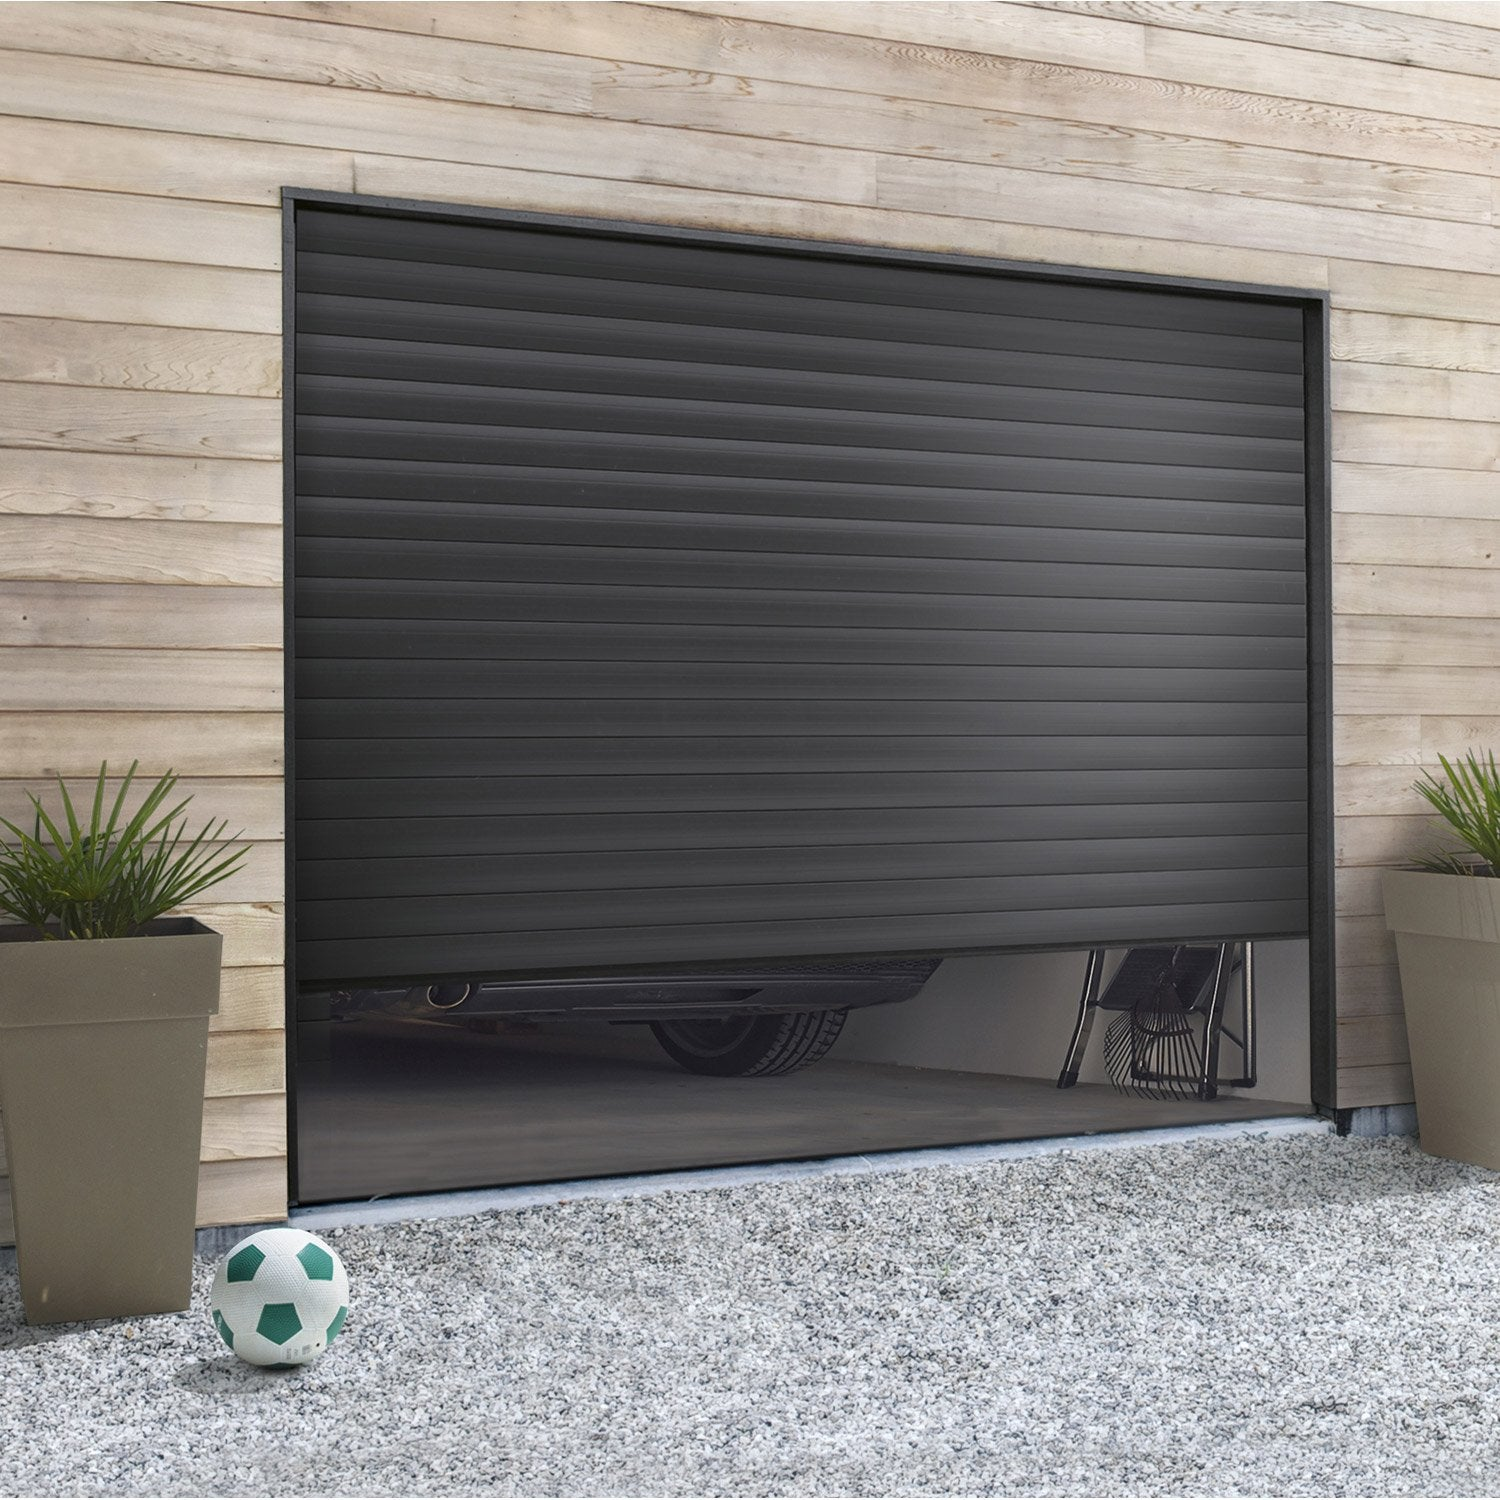 Pose d 39 une porte de garage enroulable leroy merlin for Porte de service sur mesure